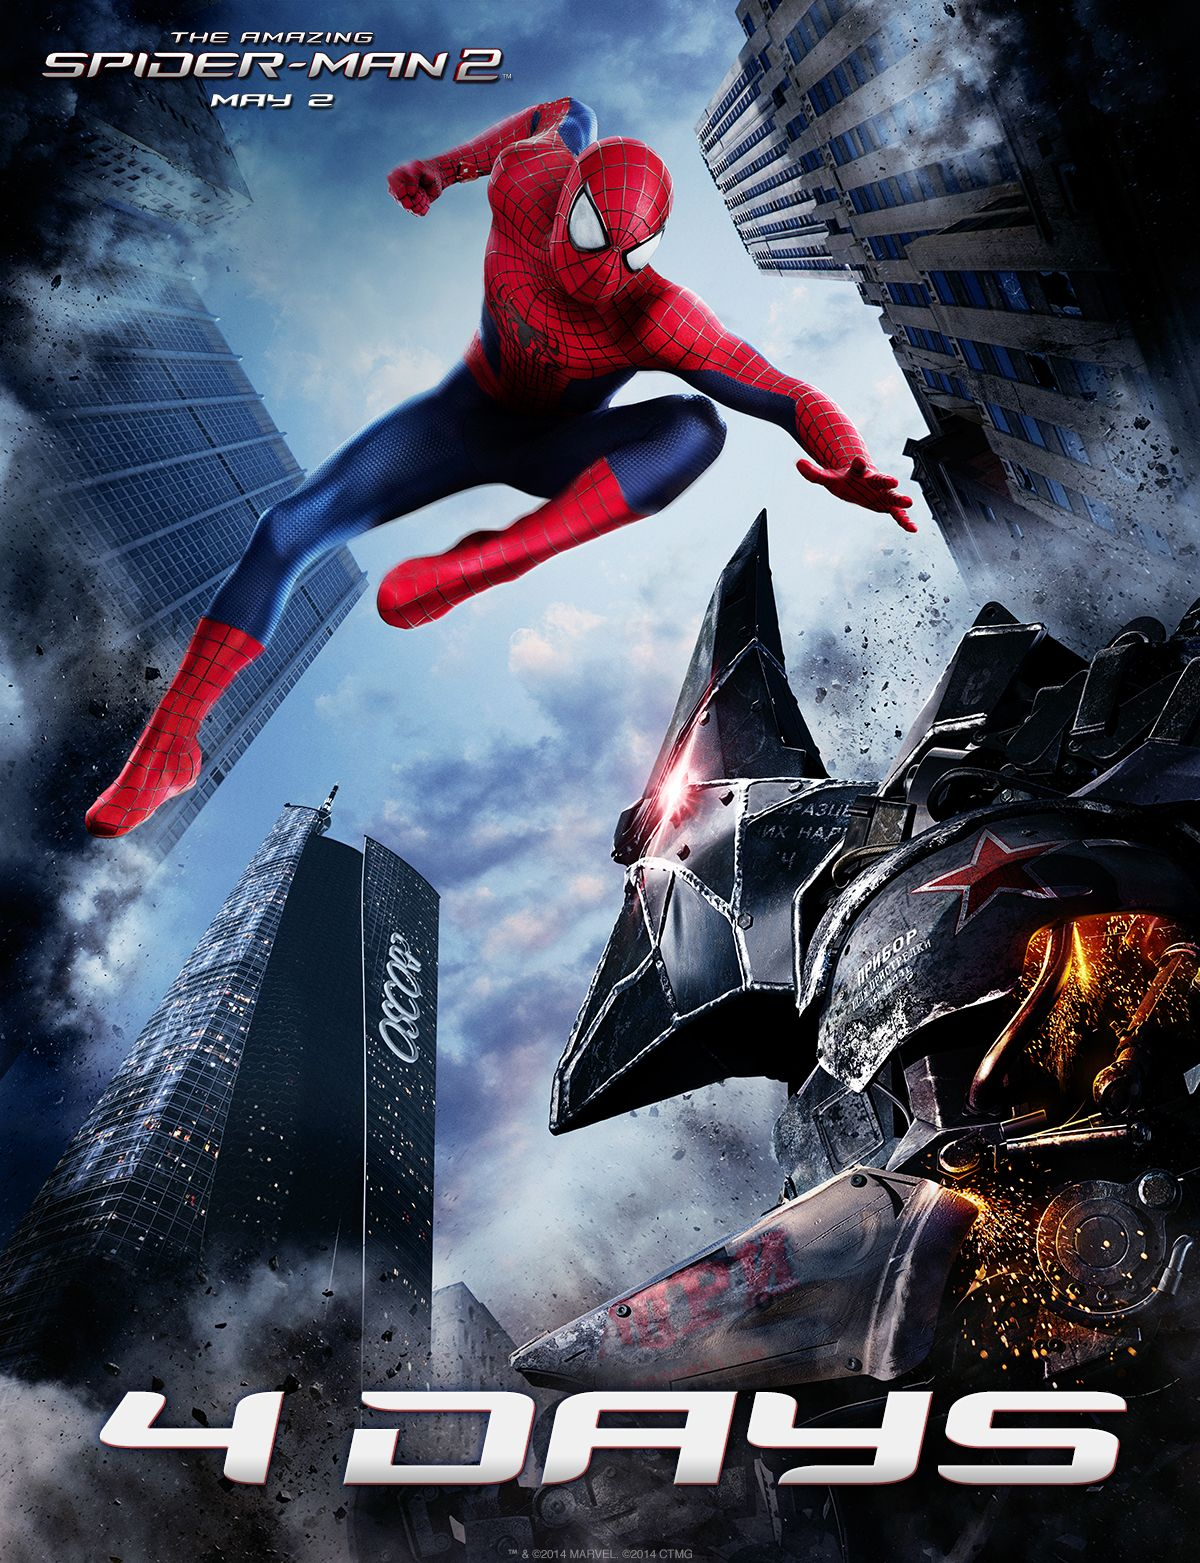 Pin By Terrie On The Amazing Spider Man 2 Amazing Spiderman Spiderman Iron Man Hd Wallpaper